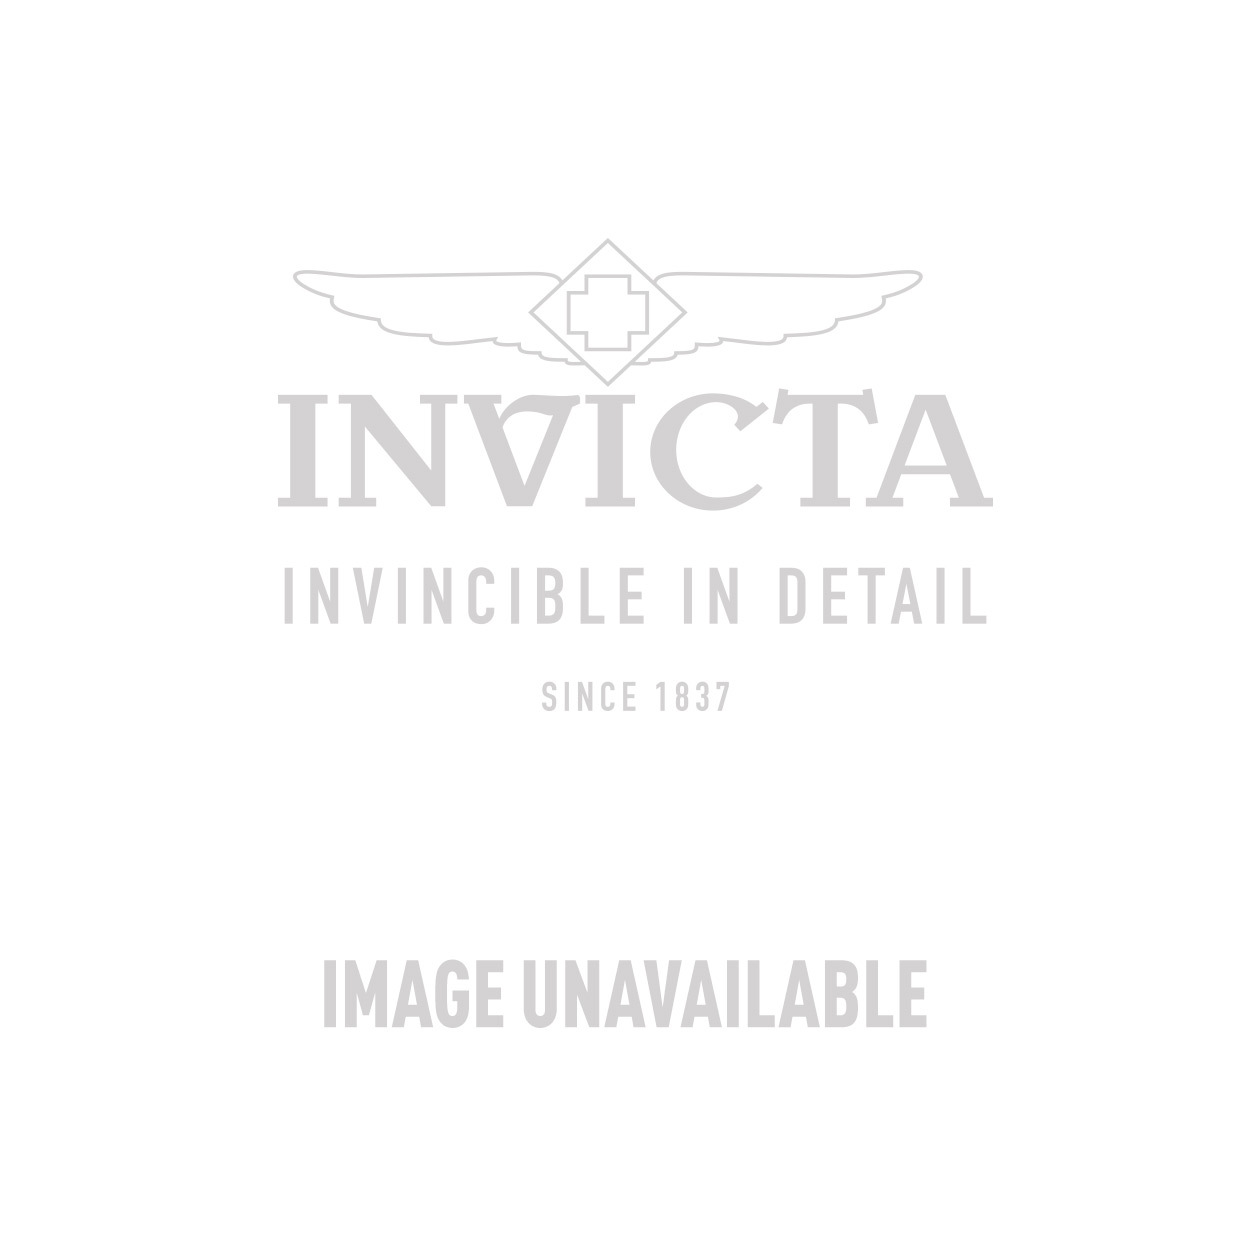 Invicta I-Force Quartz Watch - Stainless Steel case with Black tone Leather band - Model 19258